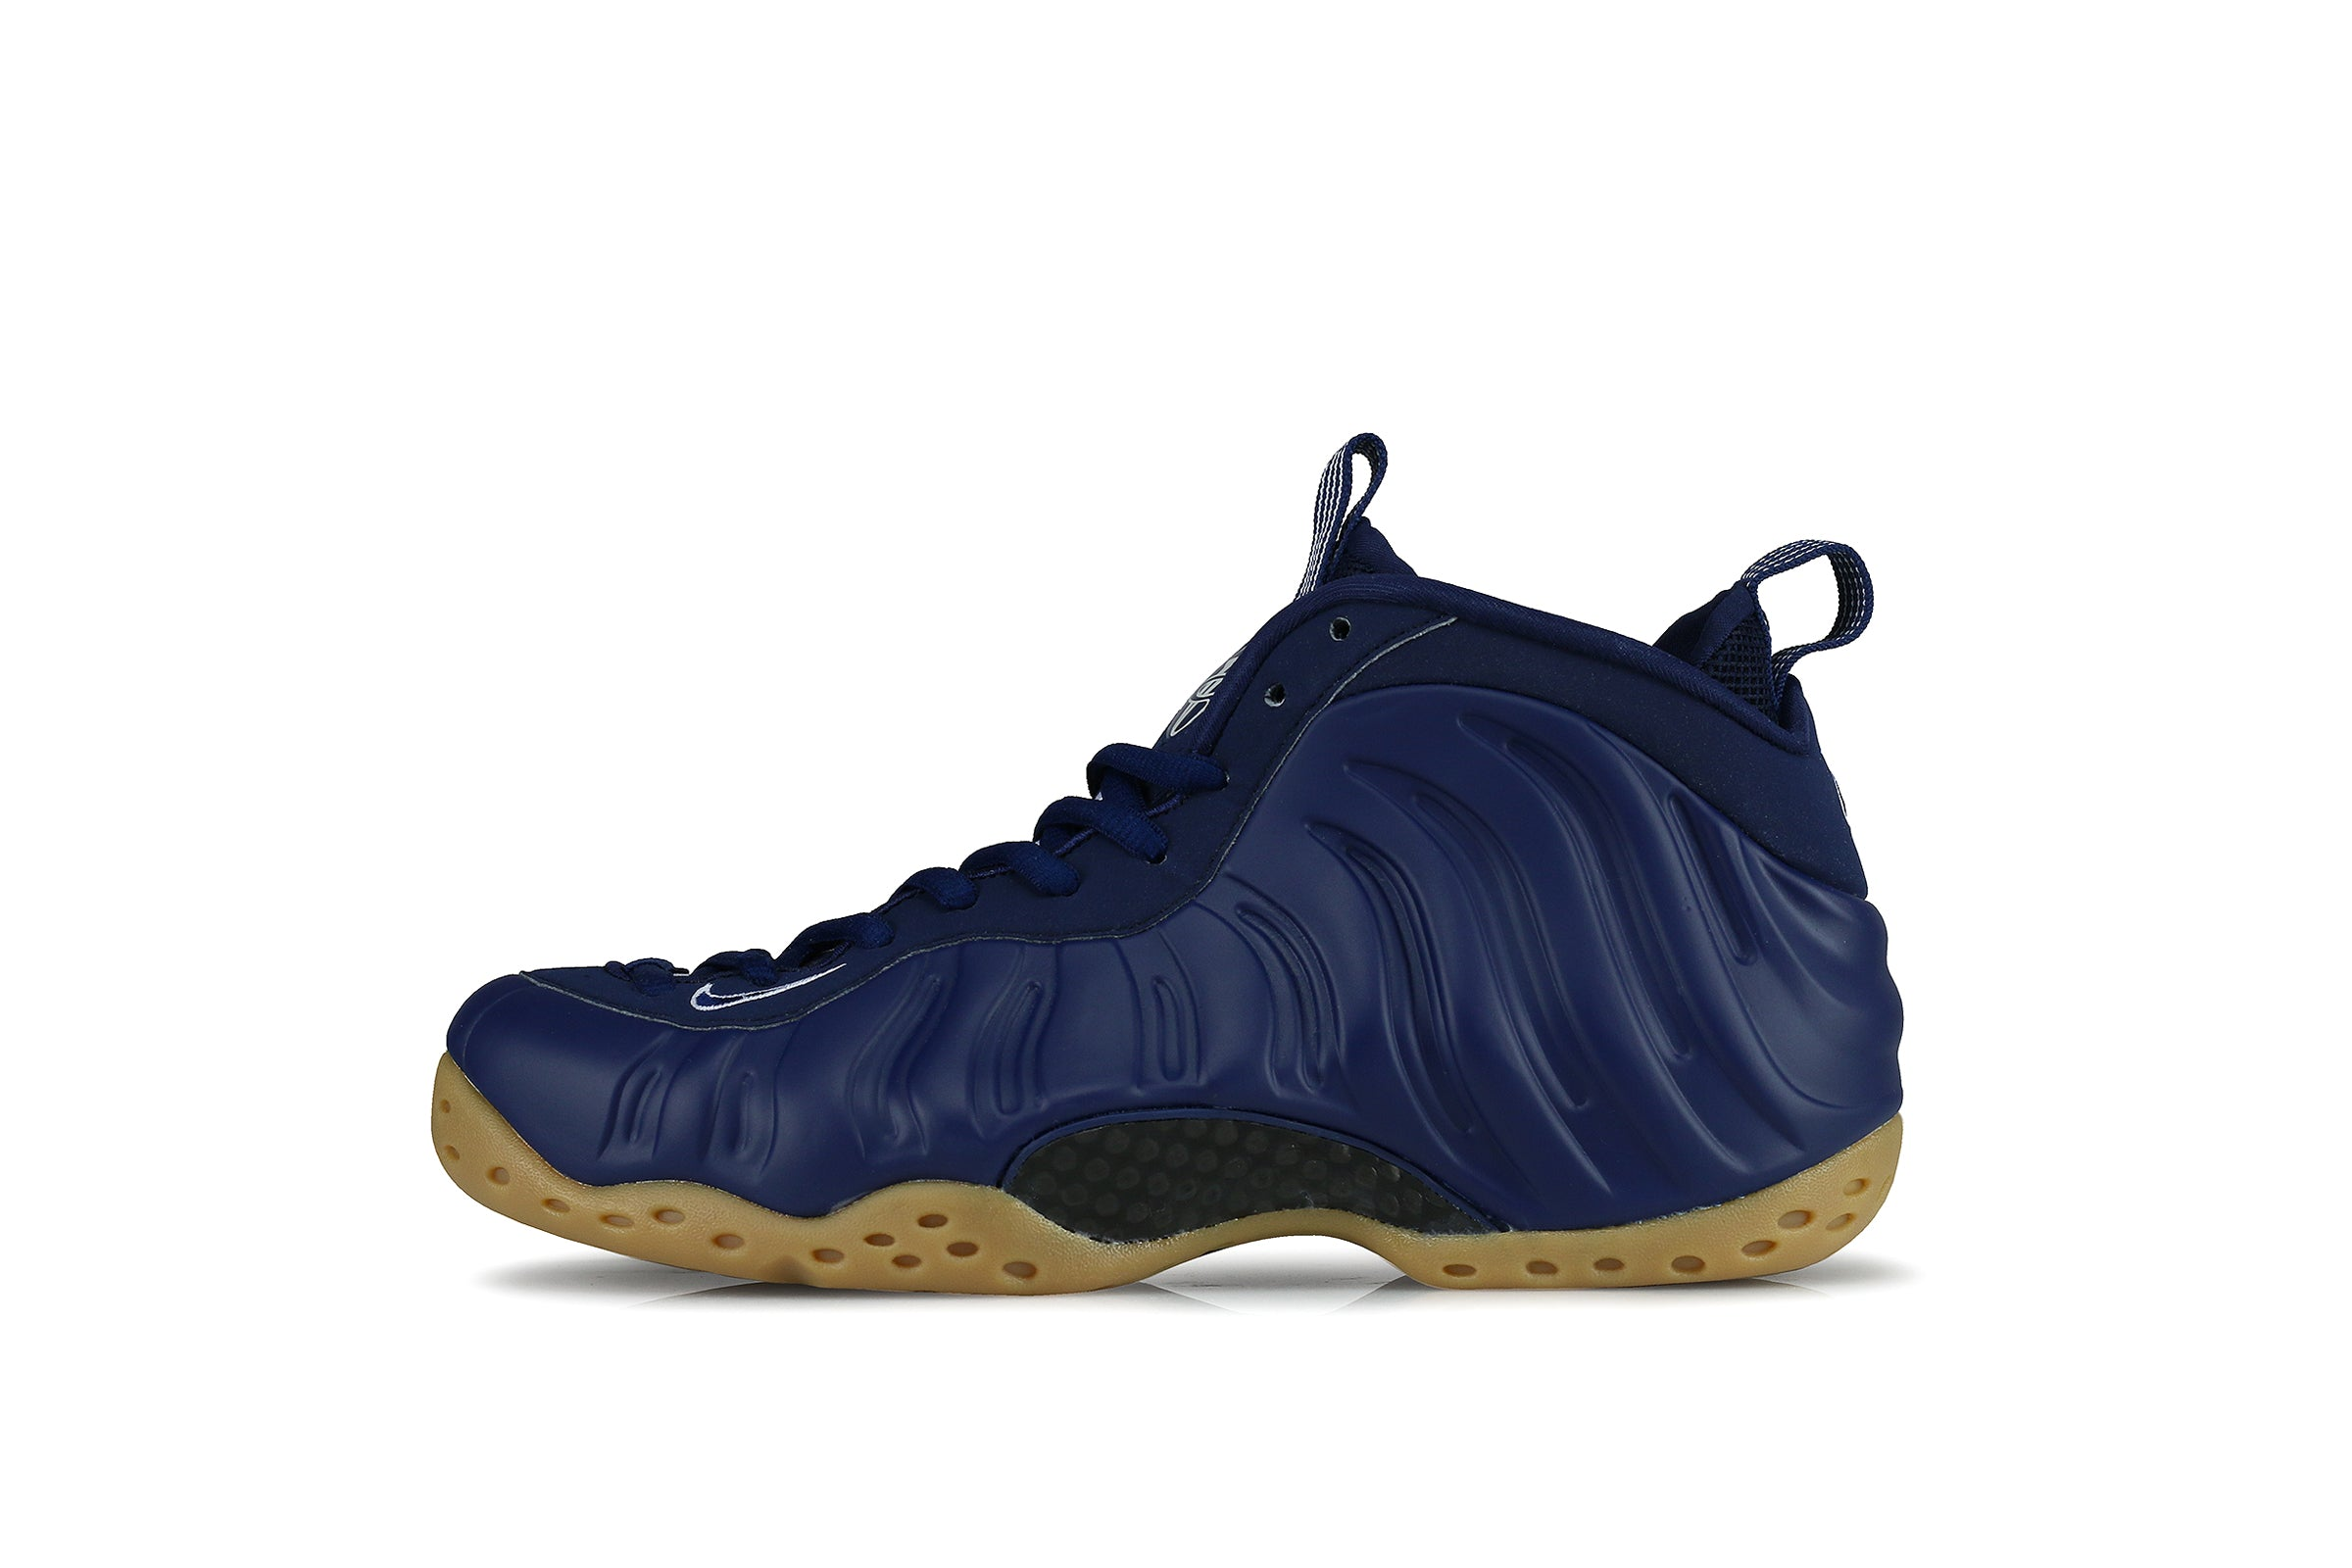 02faae31afa Nike Air Foamposite One